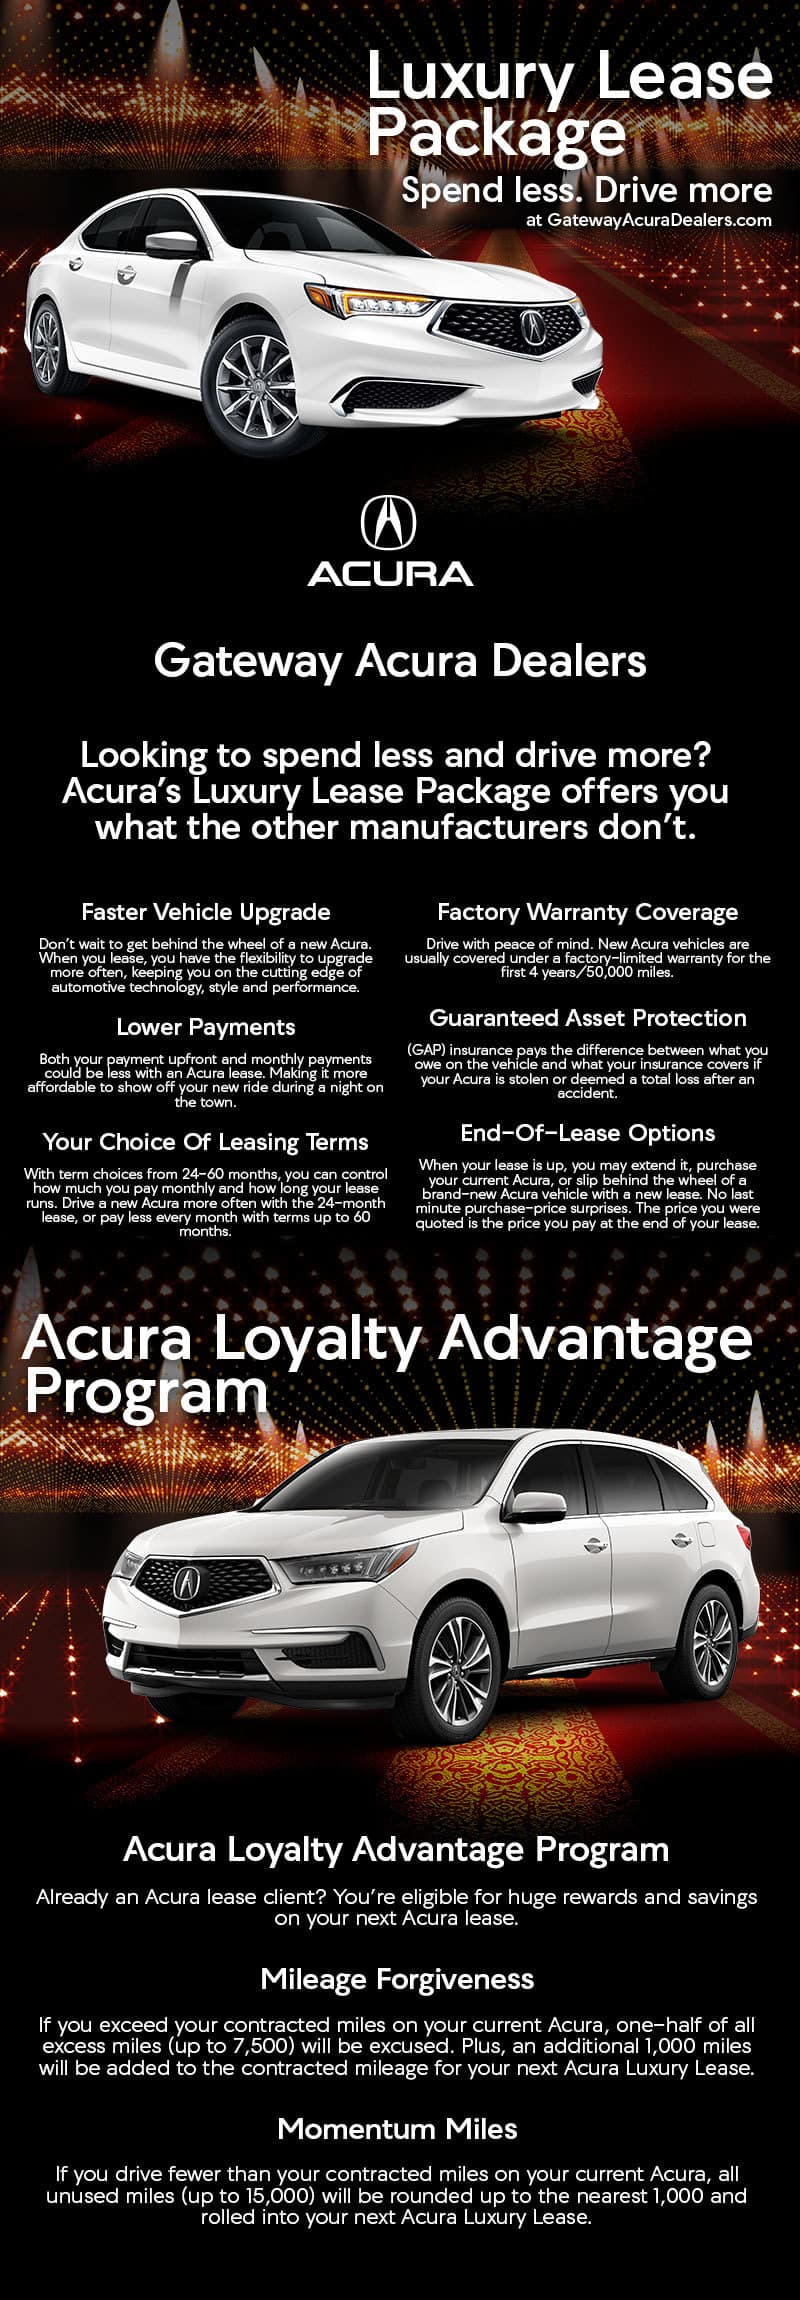 Luxury Lease Package Gateway Area Acura Dealers Acura Loyalty - Lease an acura